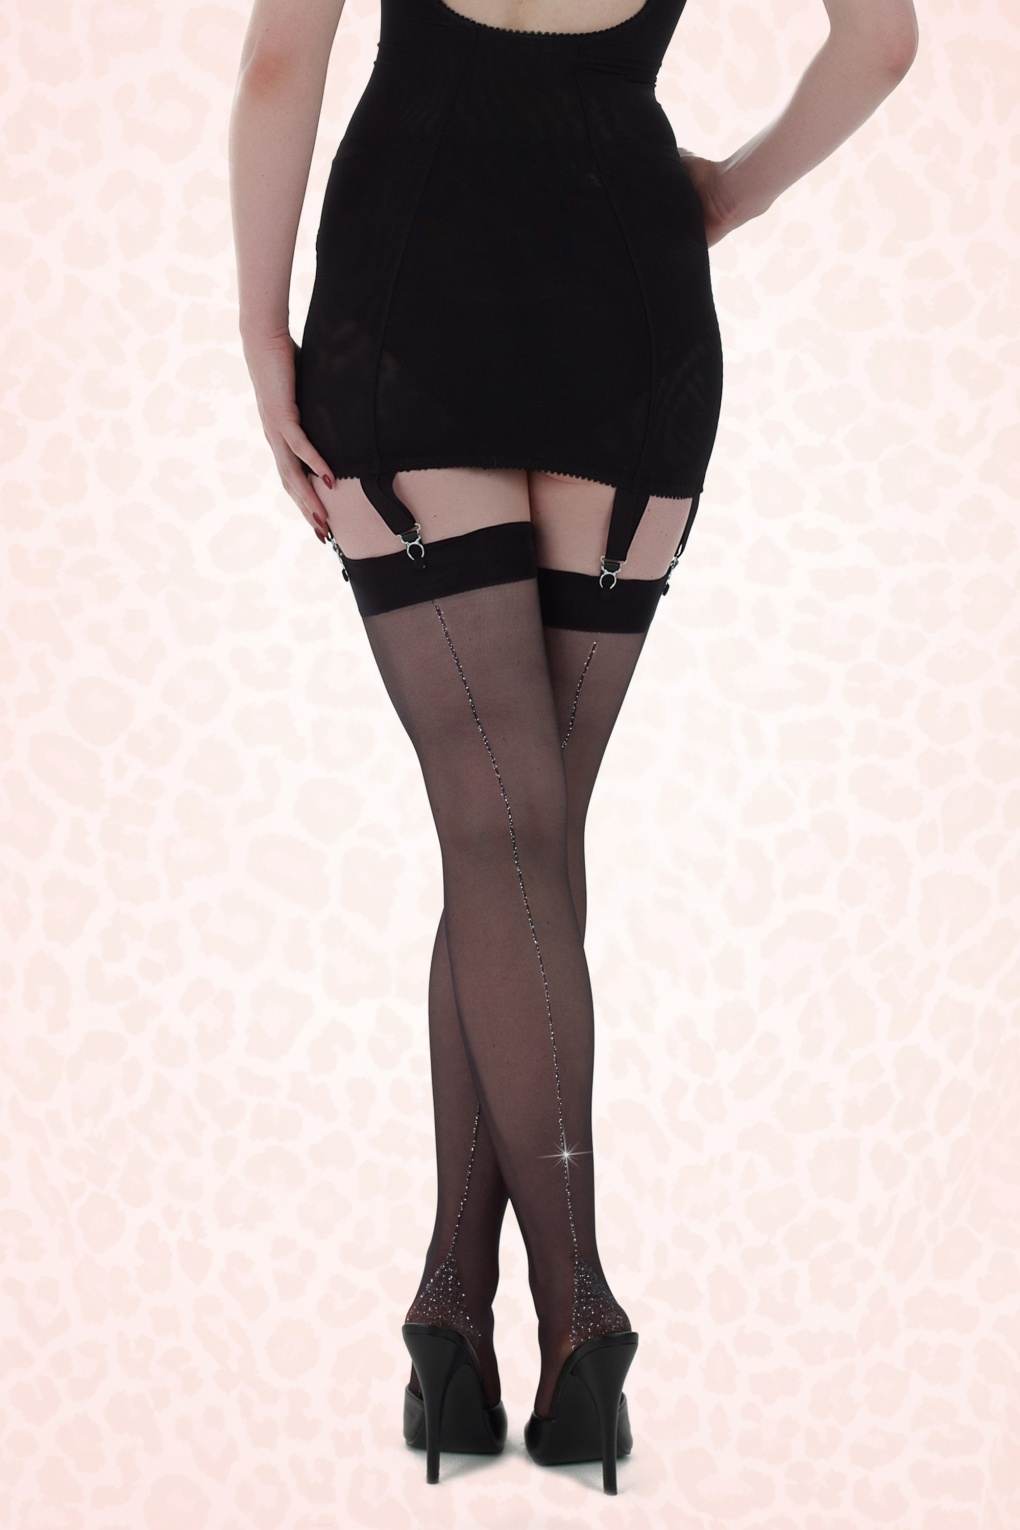 Seamed Stockings, Nylons, Tights 50s Retro Metallic Silver Seamed Stockings in Black £11.92 AT vintagedancer.com